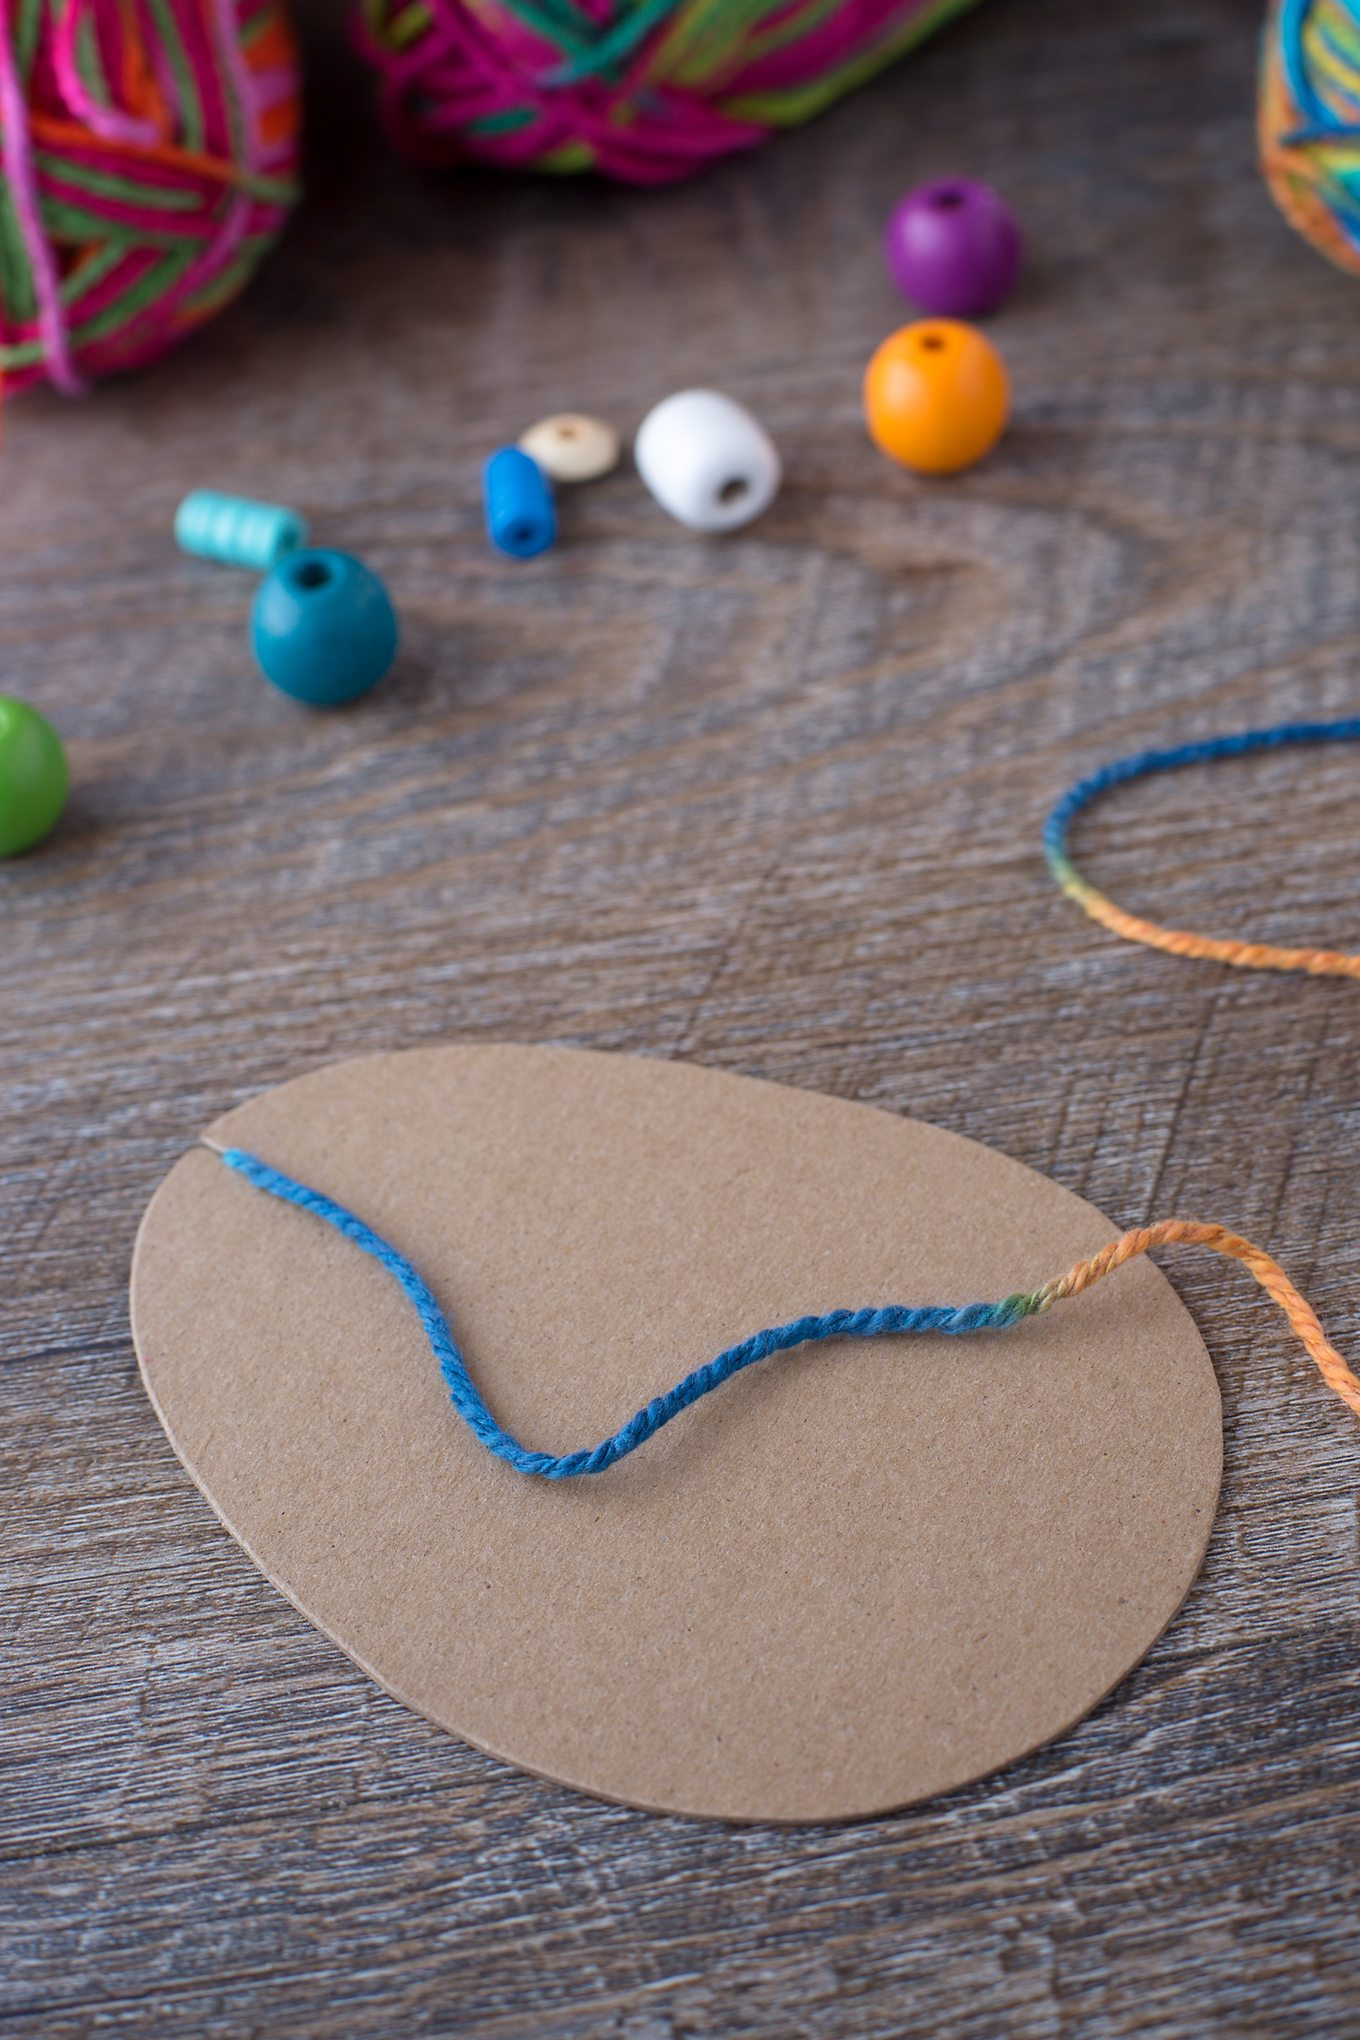 Blue Yarn on Cardboard Easter Egg